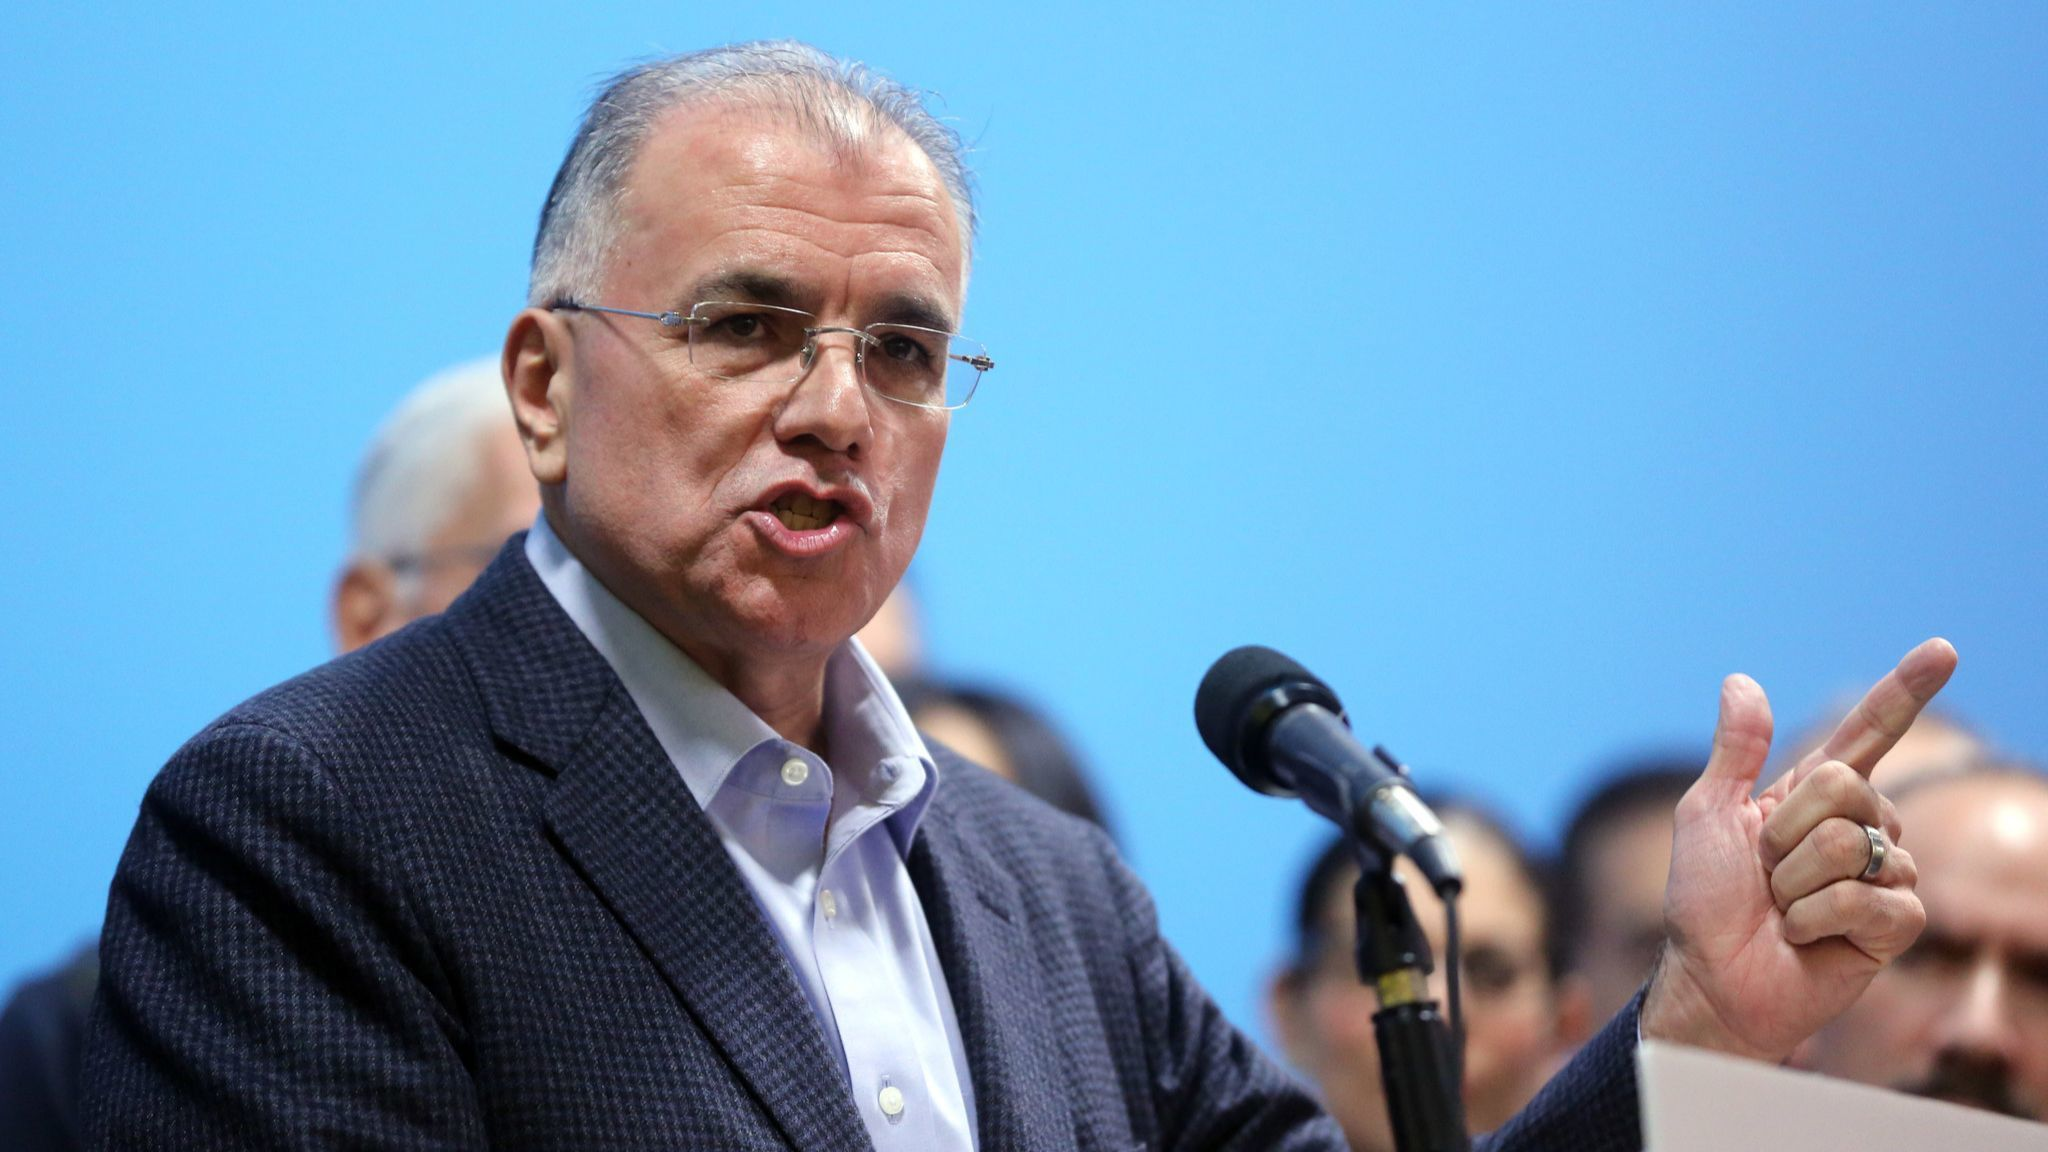 2011 mayoral candidate Gery Chico to get into crowded Chicago mayor's race to succeed Rahm Emanuel | Chicago Tribune